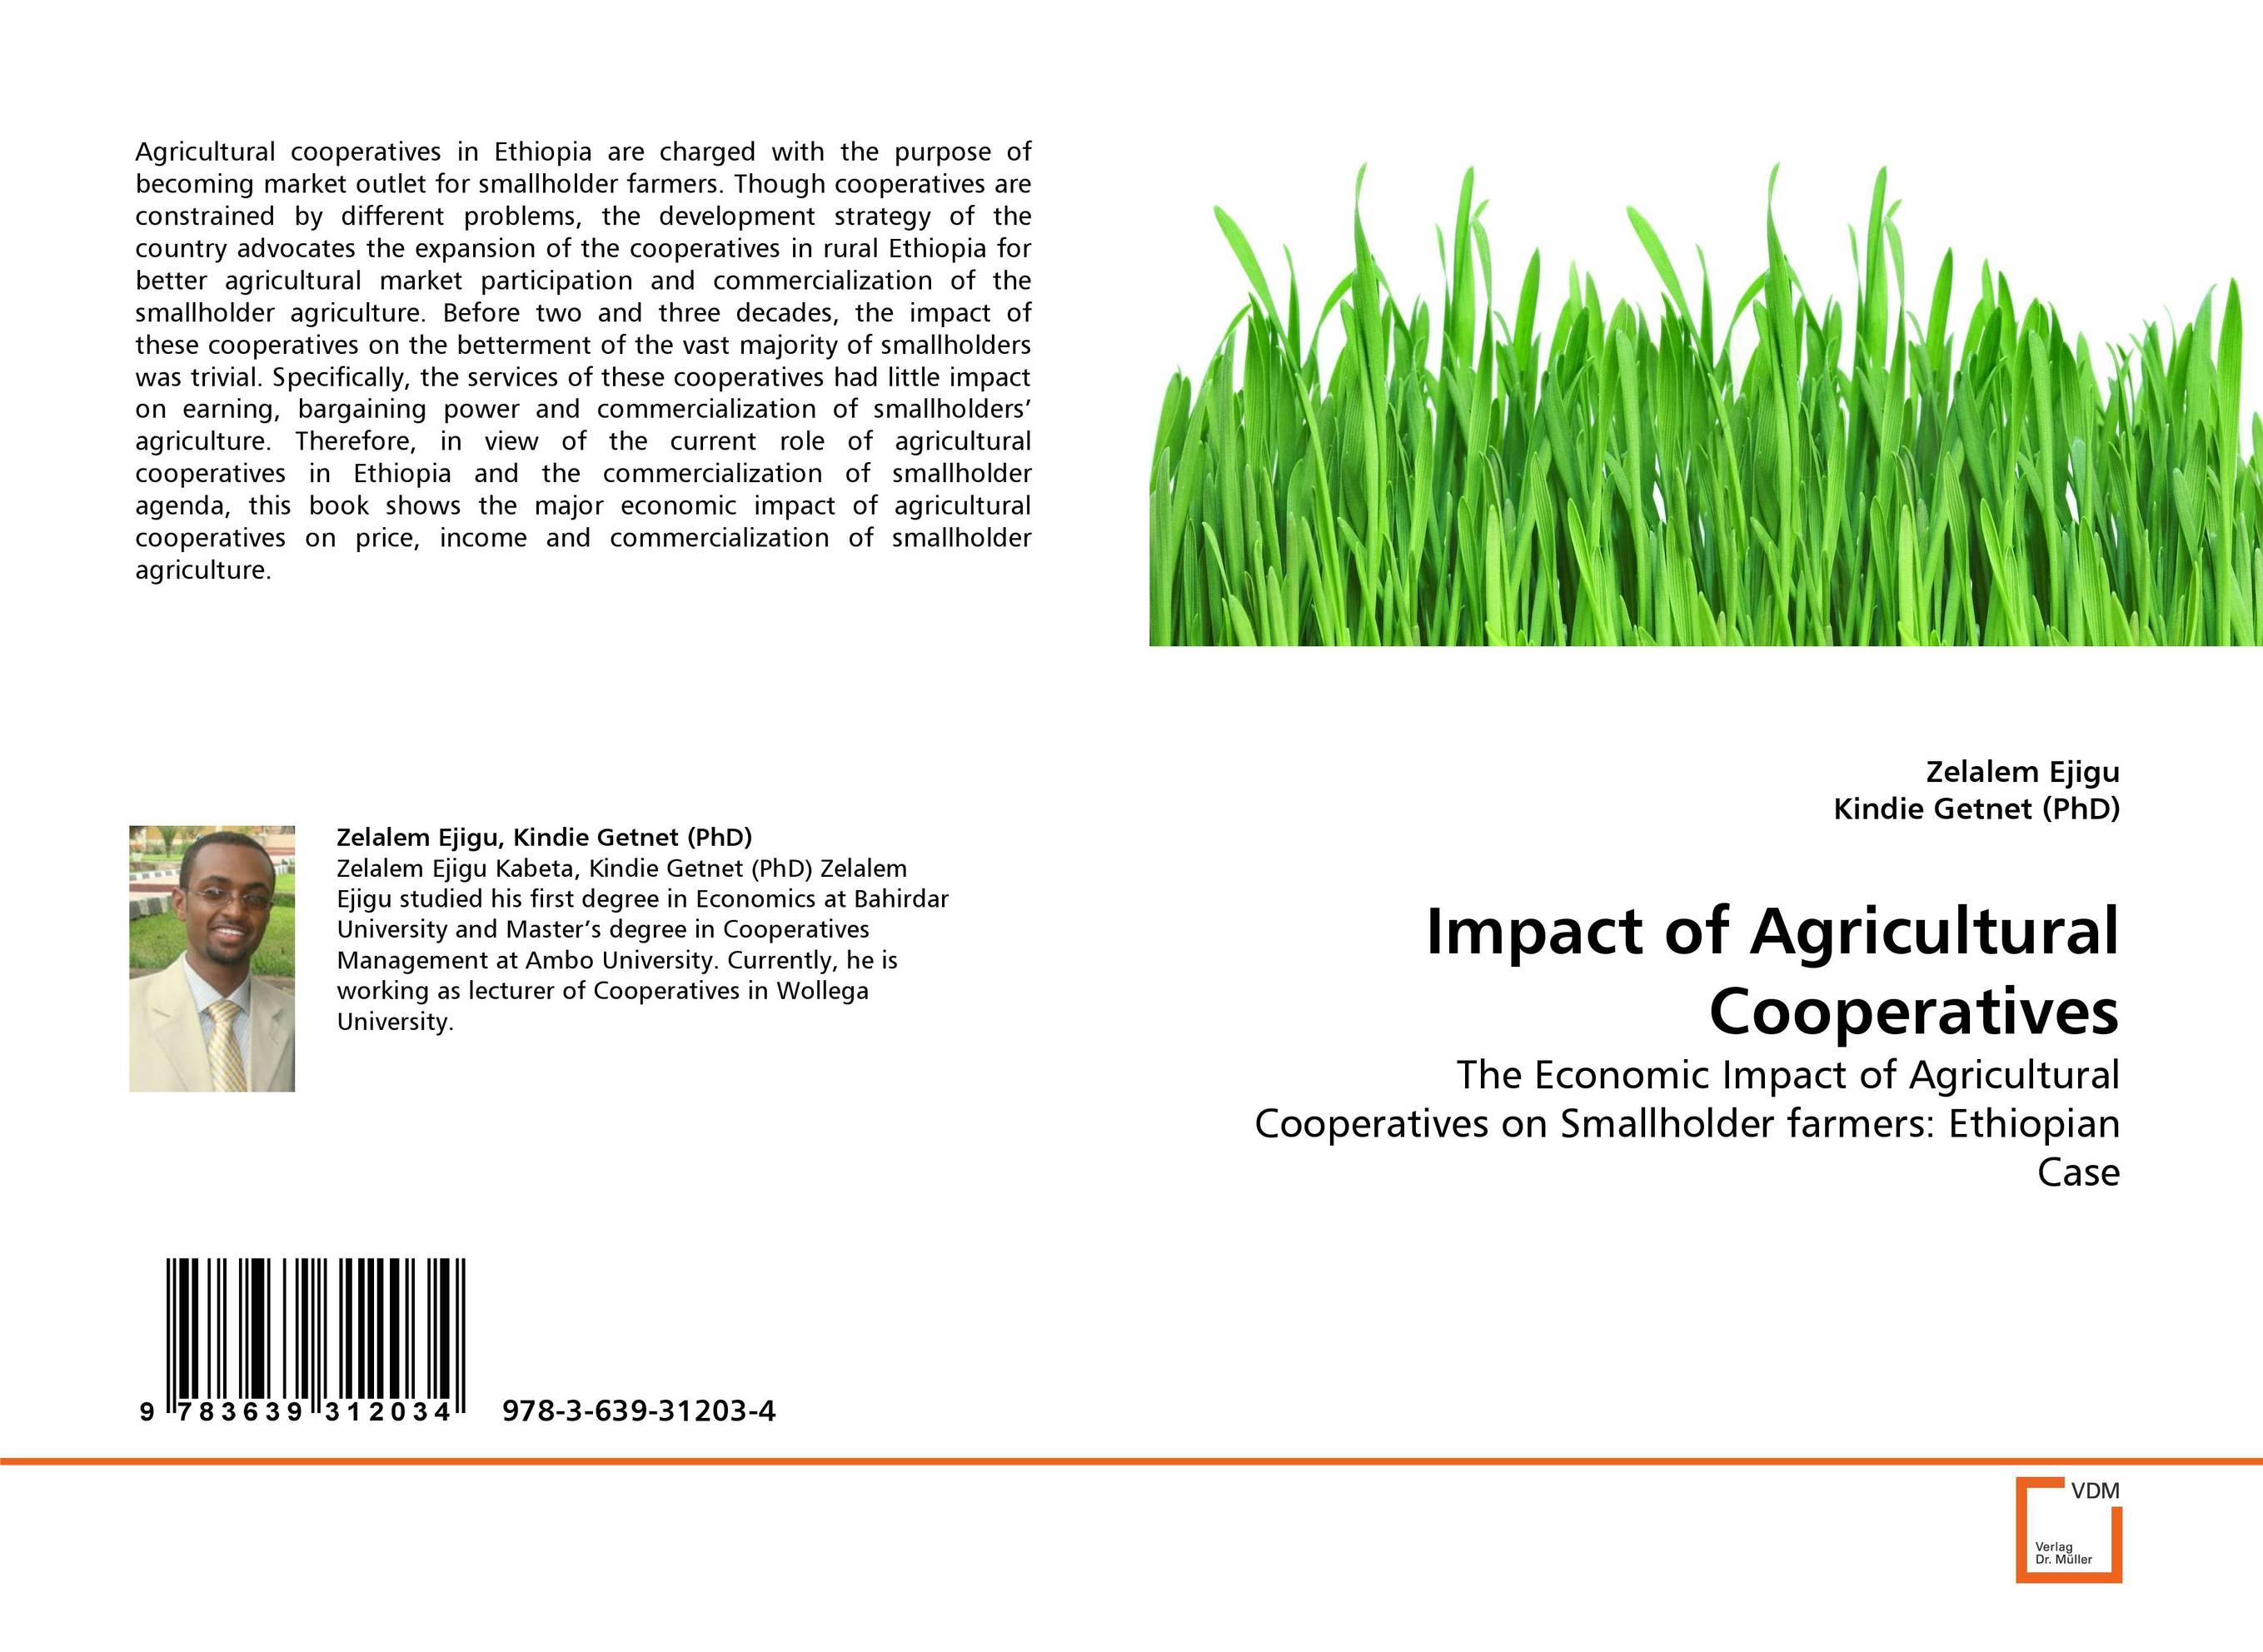 Impact of Agricultural Cooperatives the role of cooperatives in community development